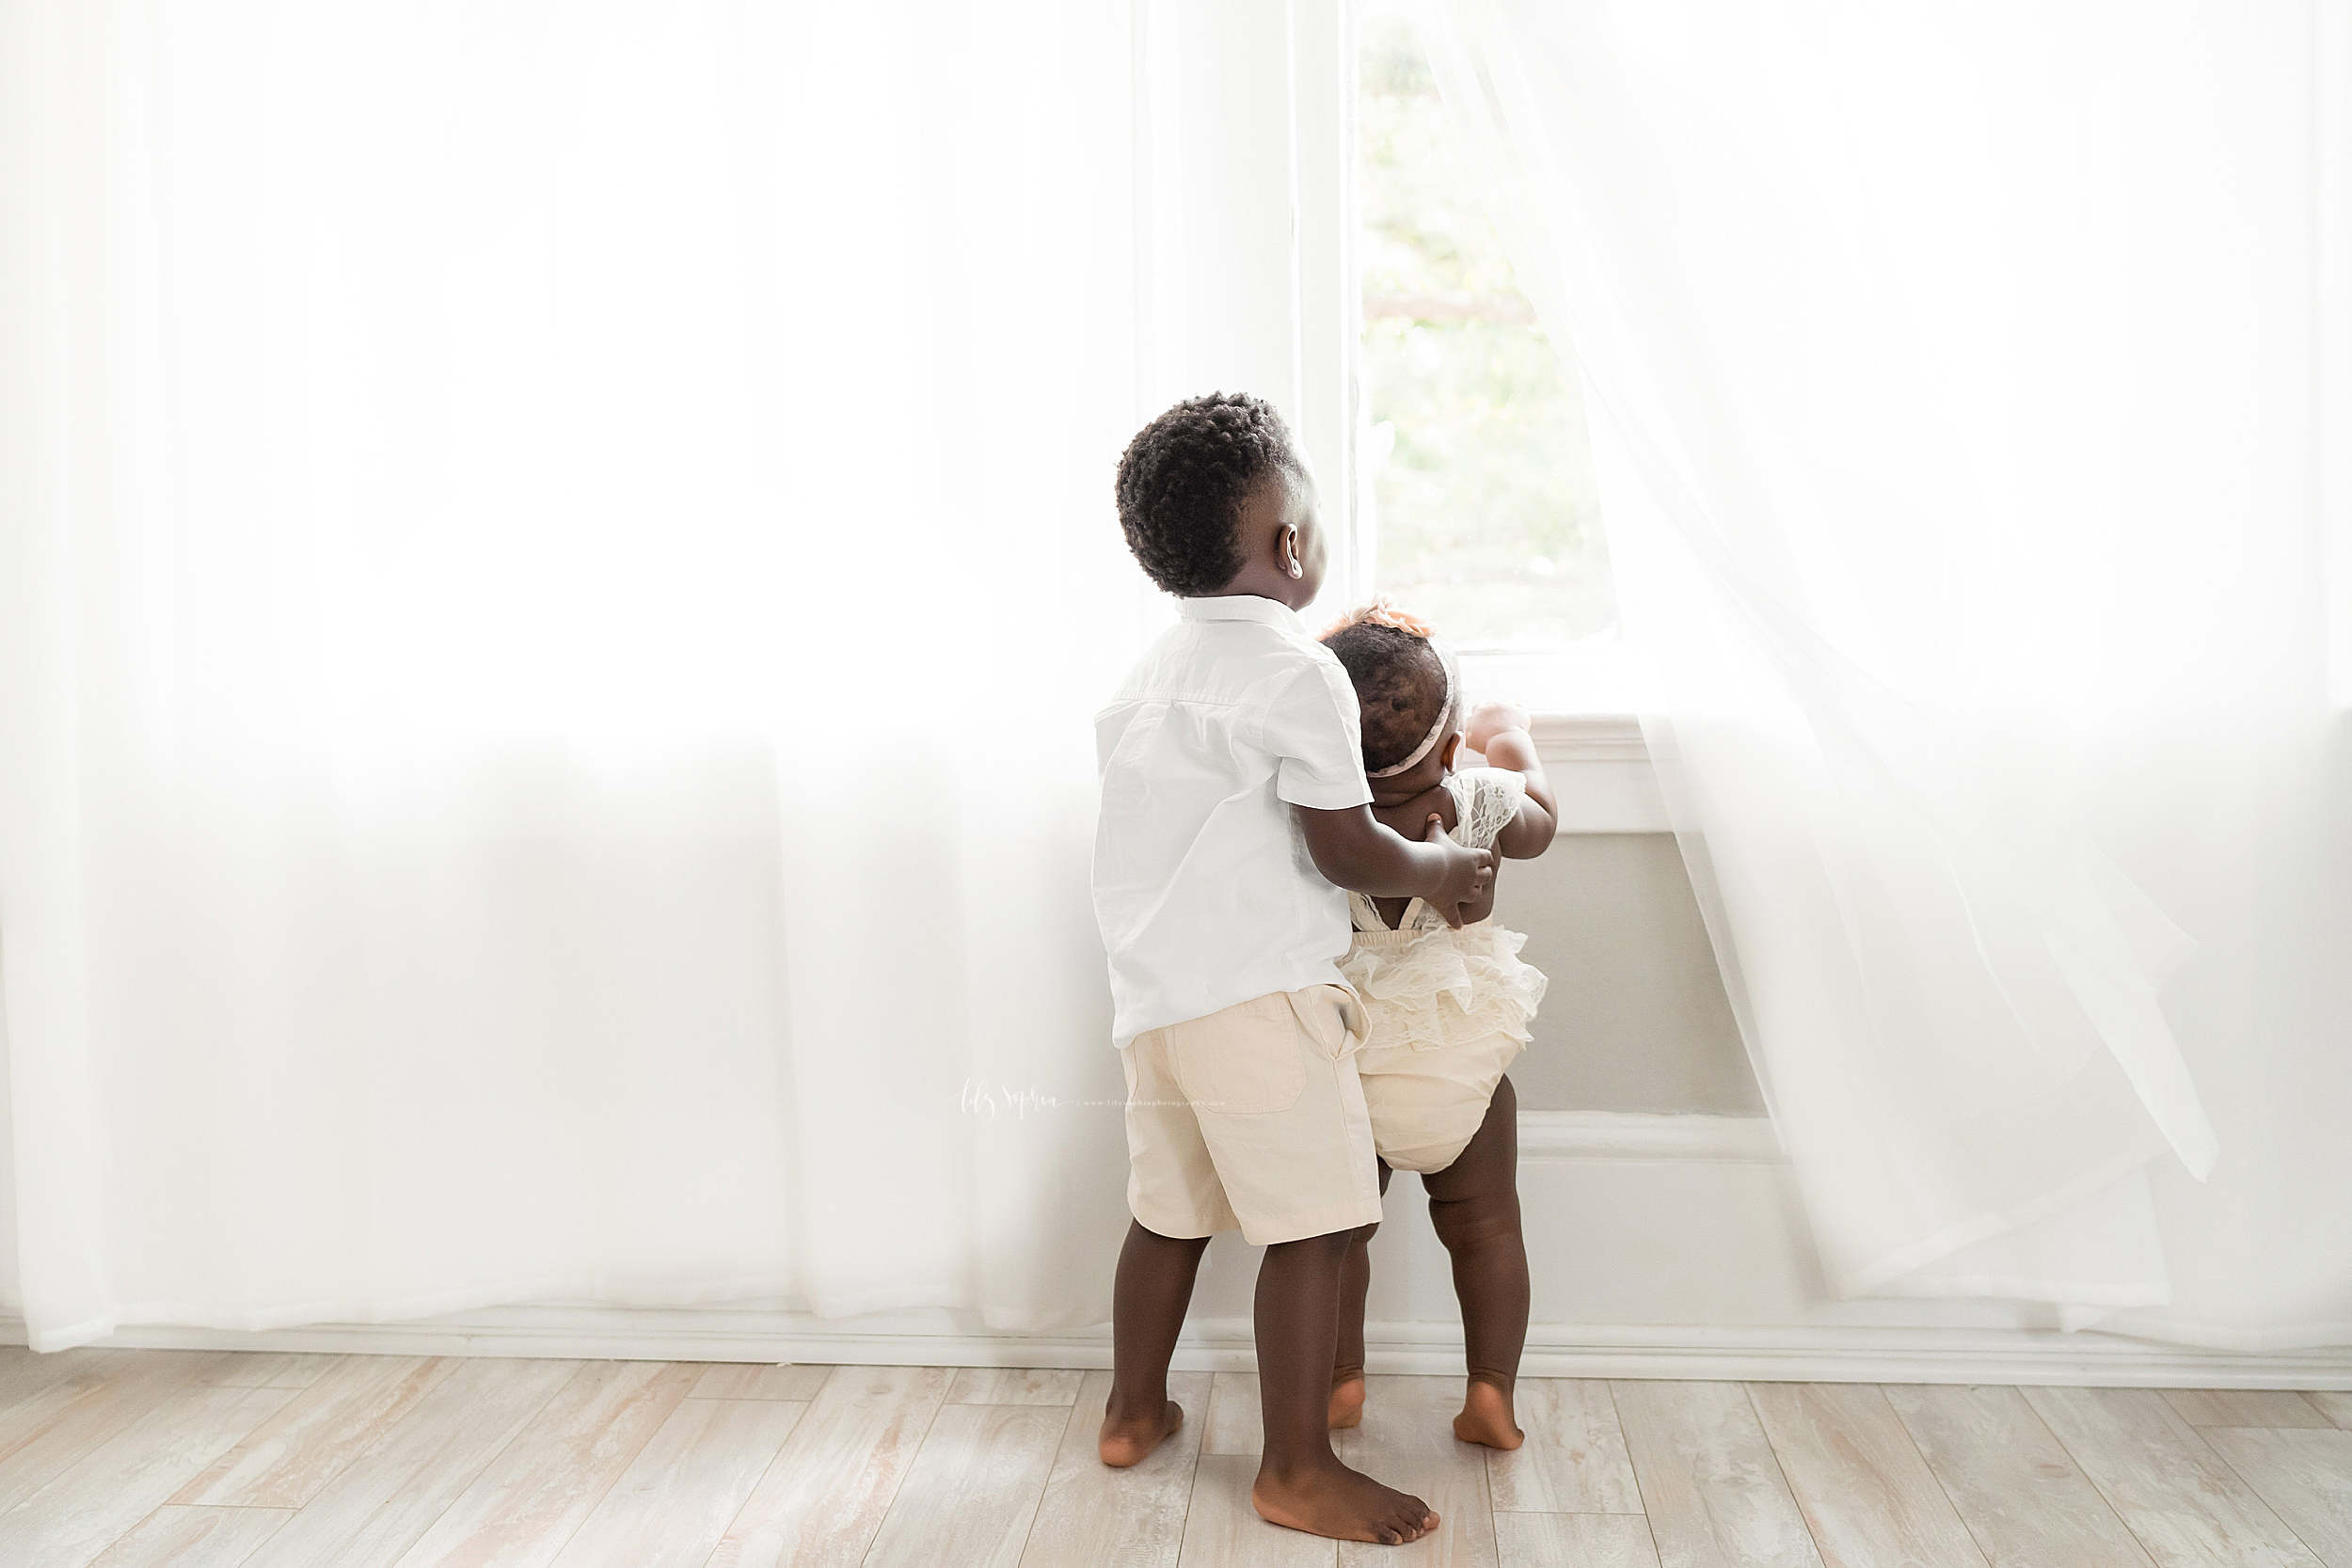 Family photo of two African-American children, a brother and sister, as they look out of a studio window in Atlanta.